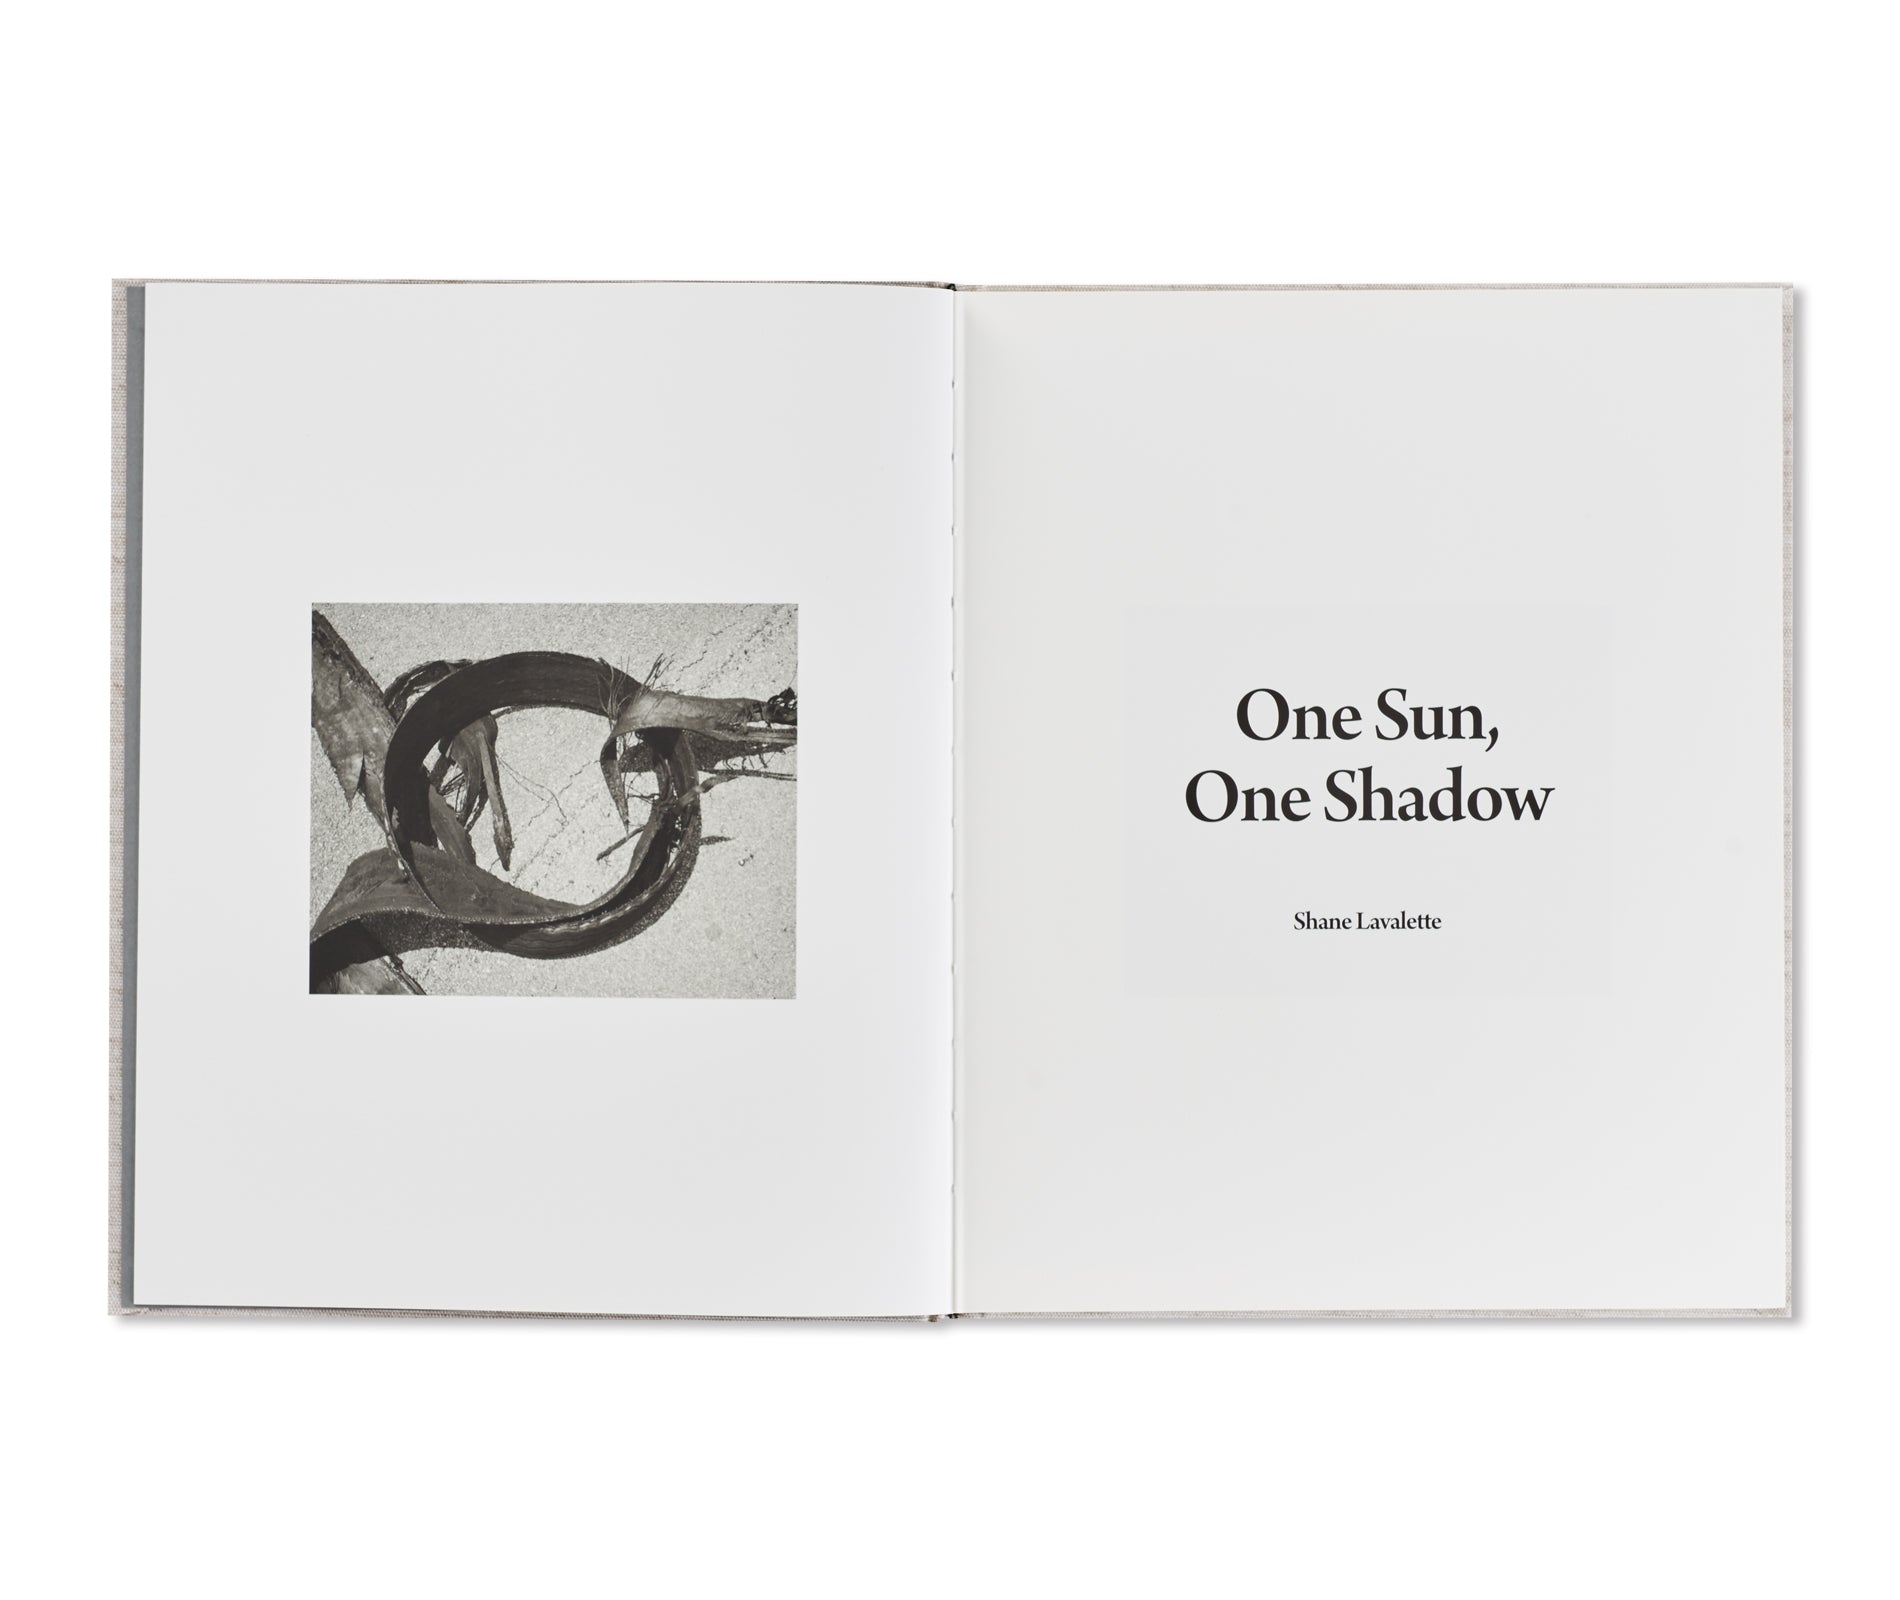 ONE SUN, ONE SHADOW by Shane Lavalette [SIGNED]